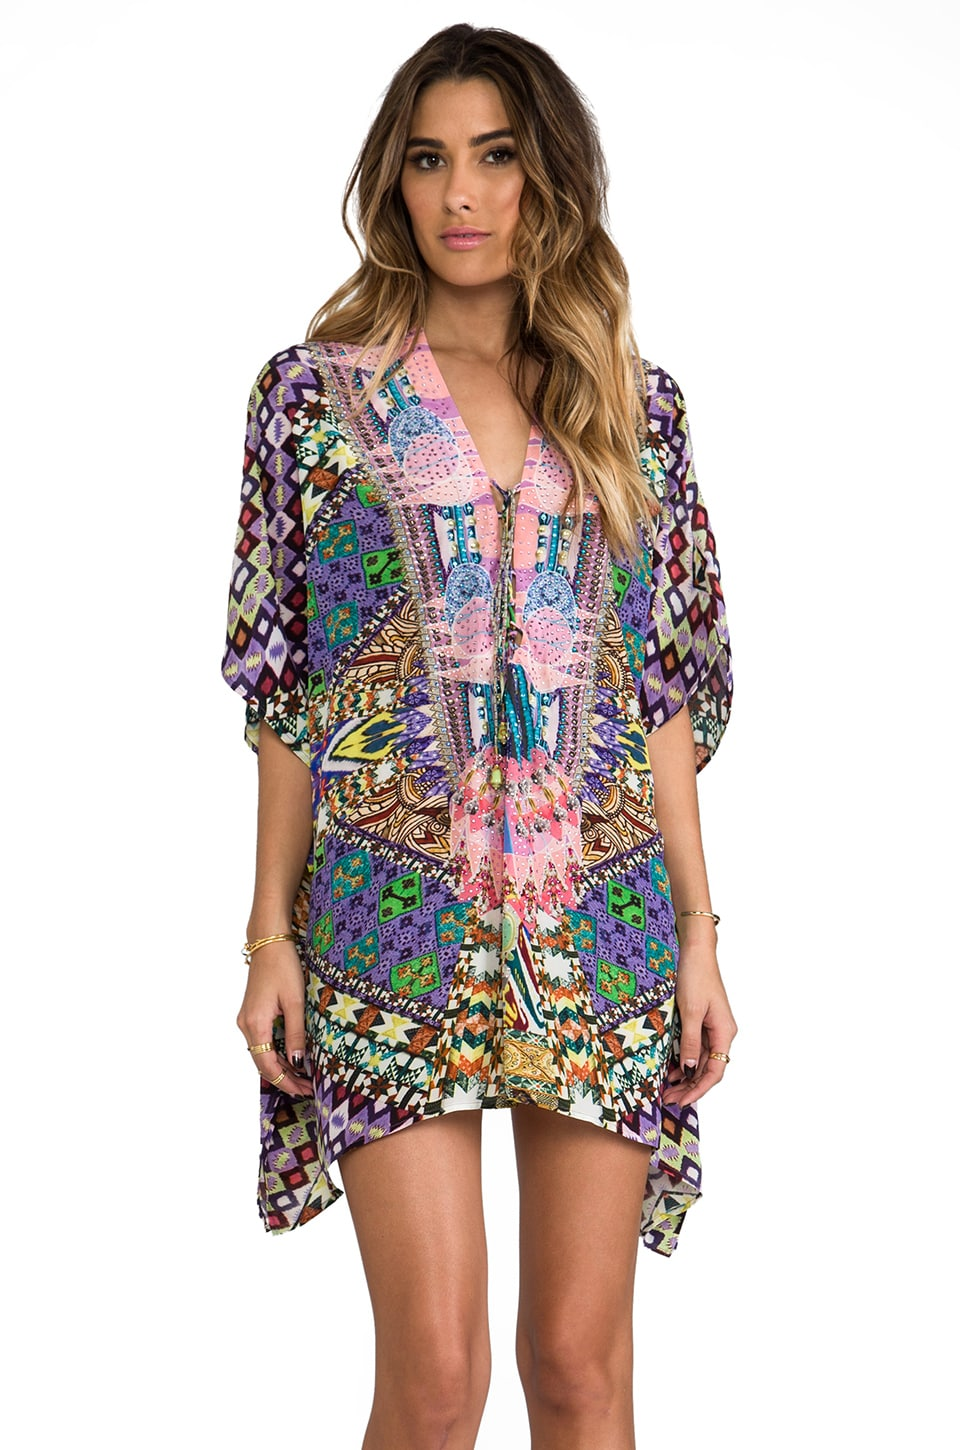 Camilla Mycenaean Short Lace Up Kaftan in Eris